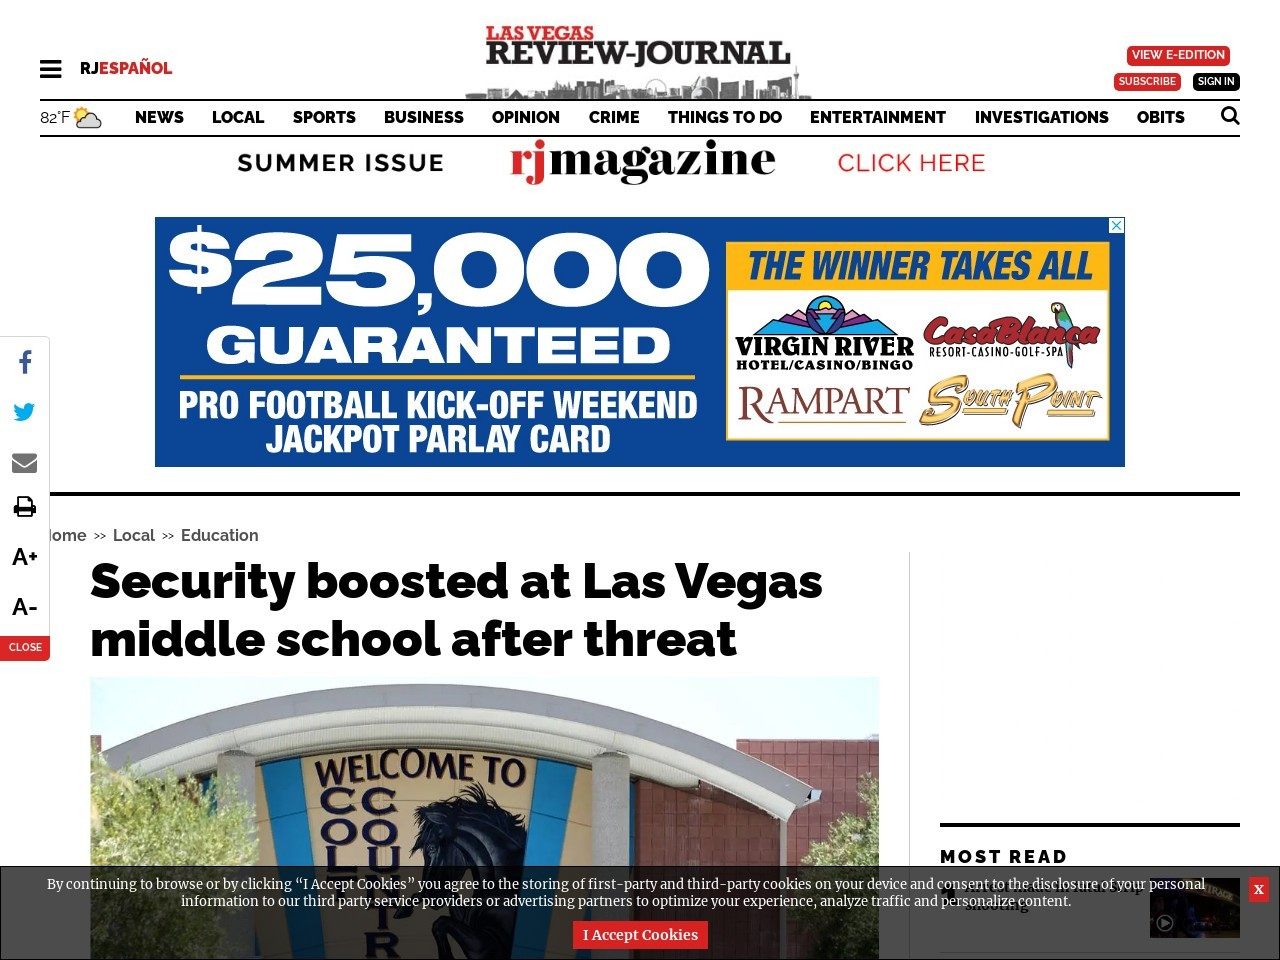 Security boosted at Las Vegas middle school after threat